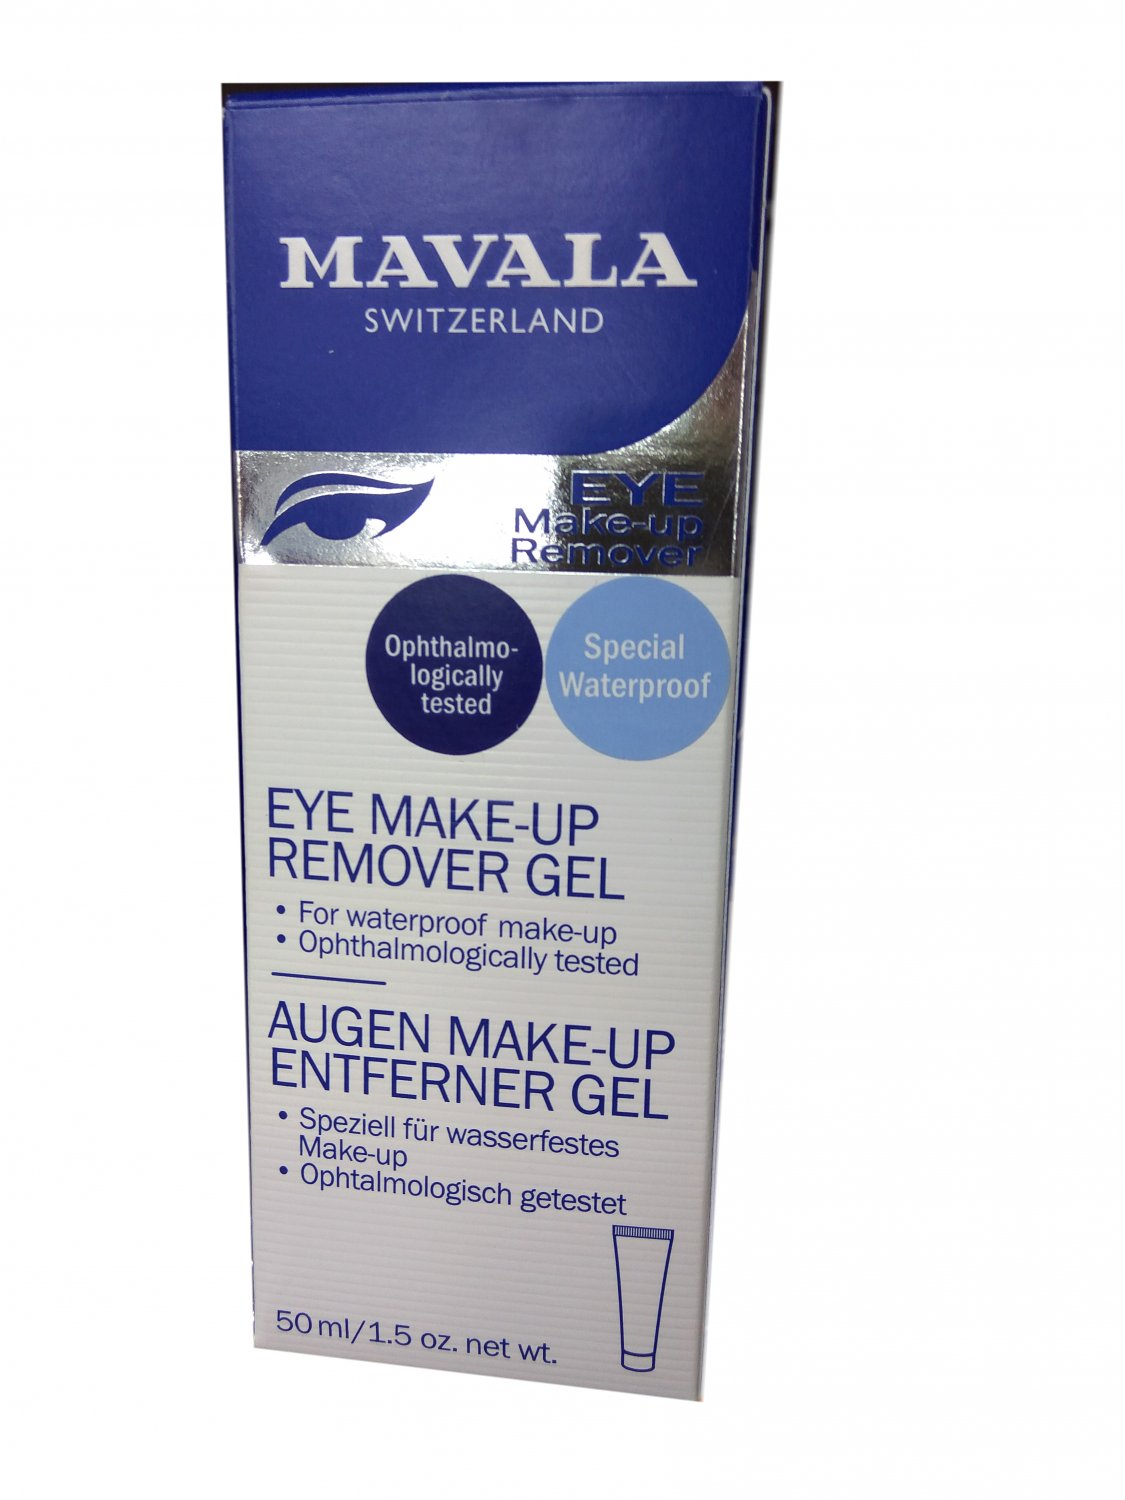 Mavala Eye Make-up Remover Gel 50ml Eye Care